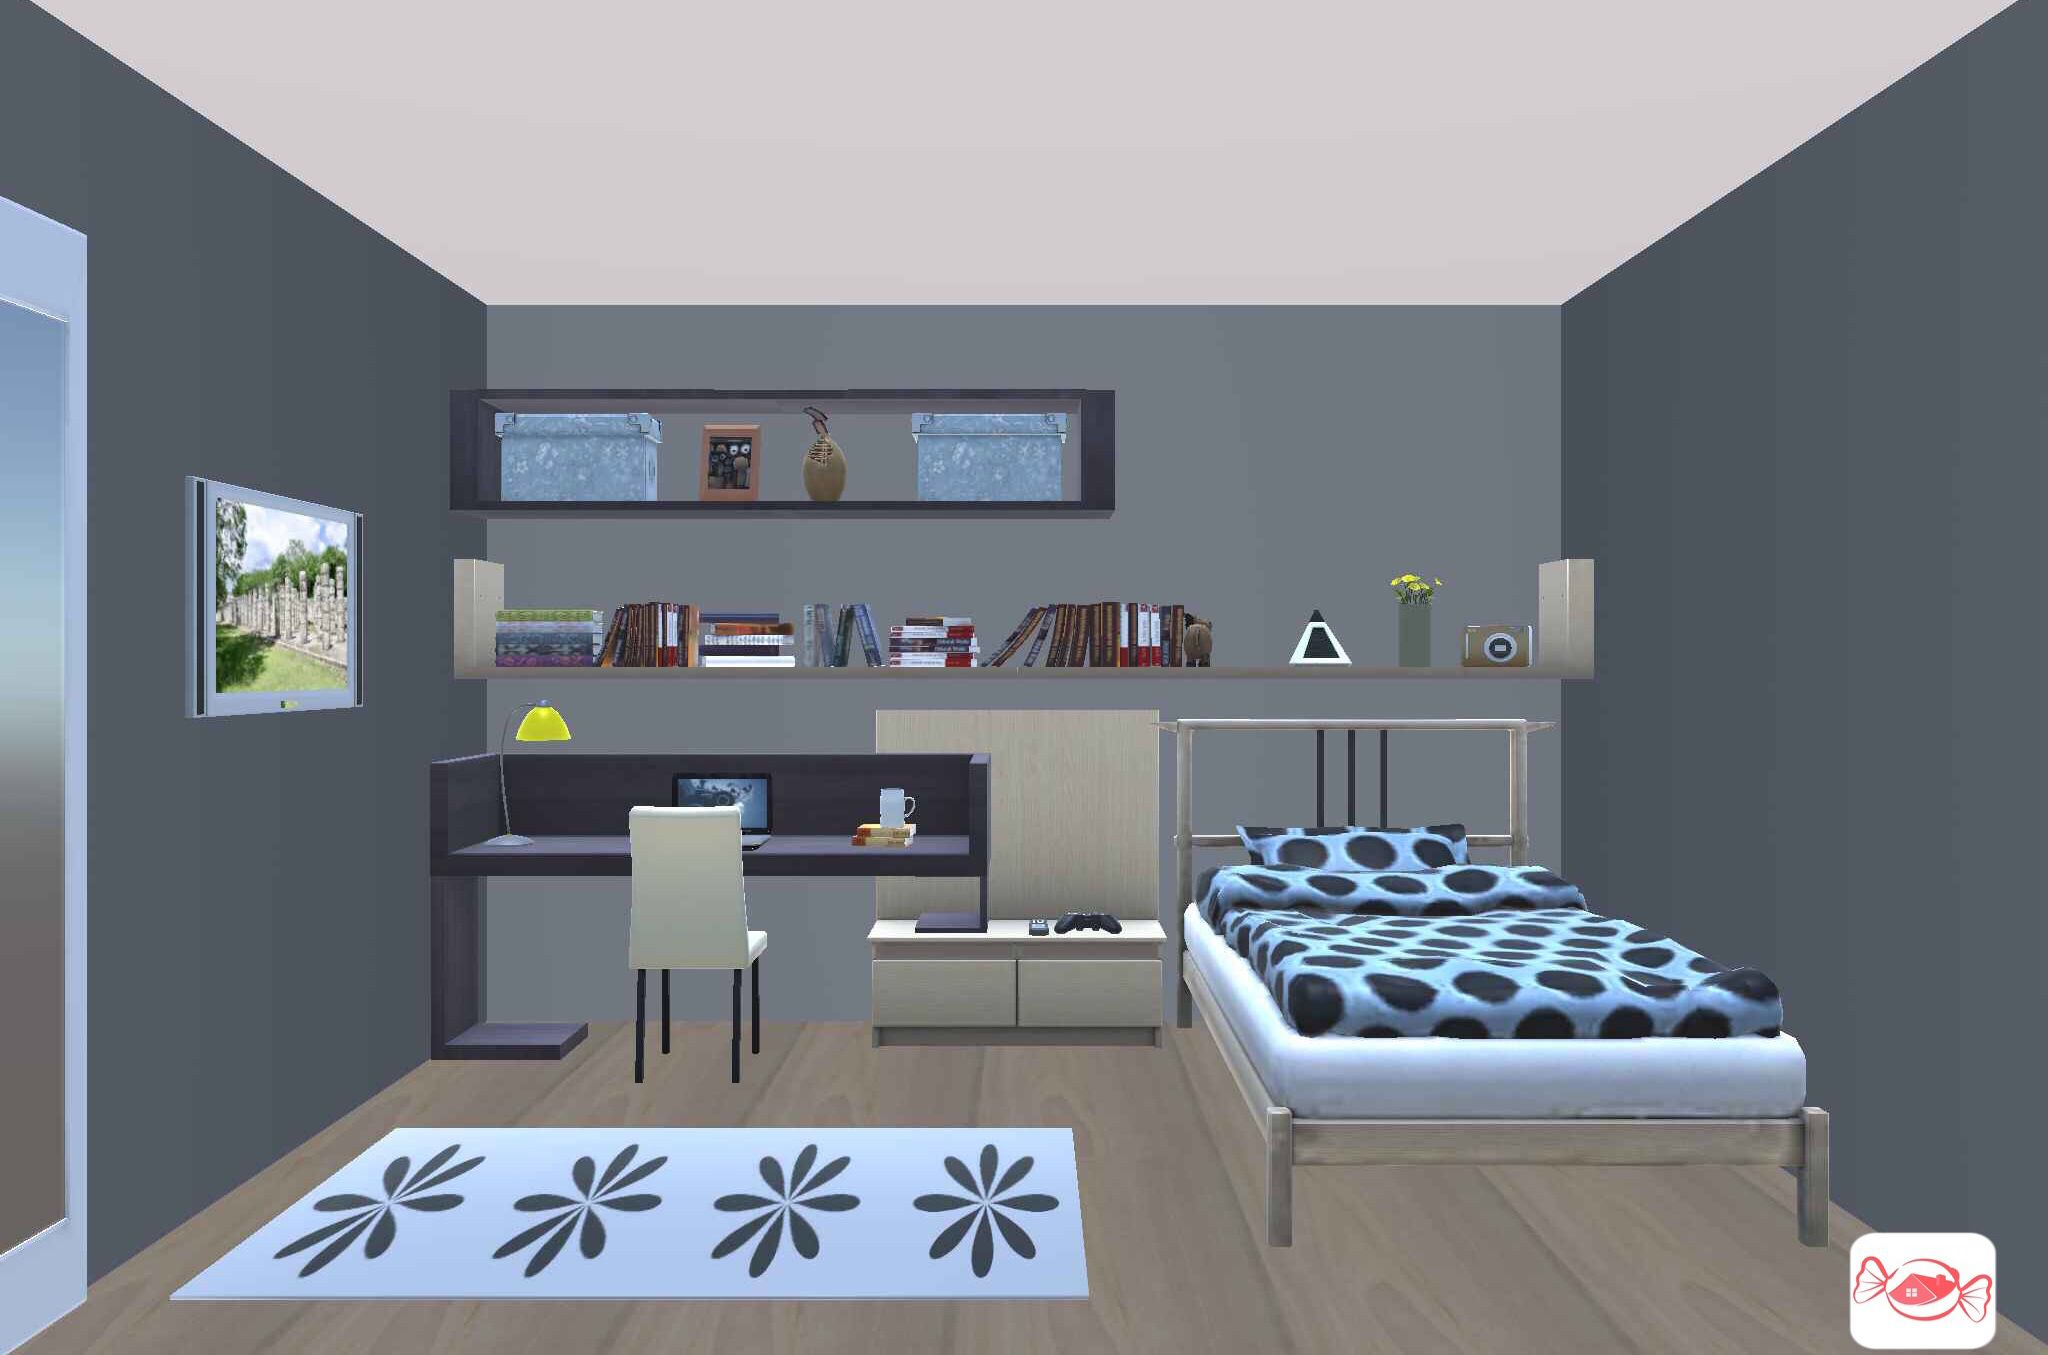 Bedroom Design Your Own Home 3d Home Design Sweet Home